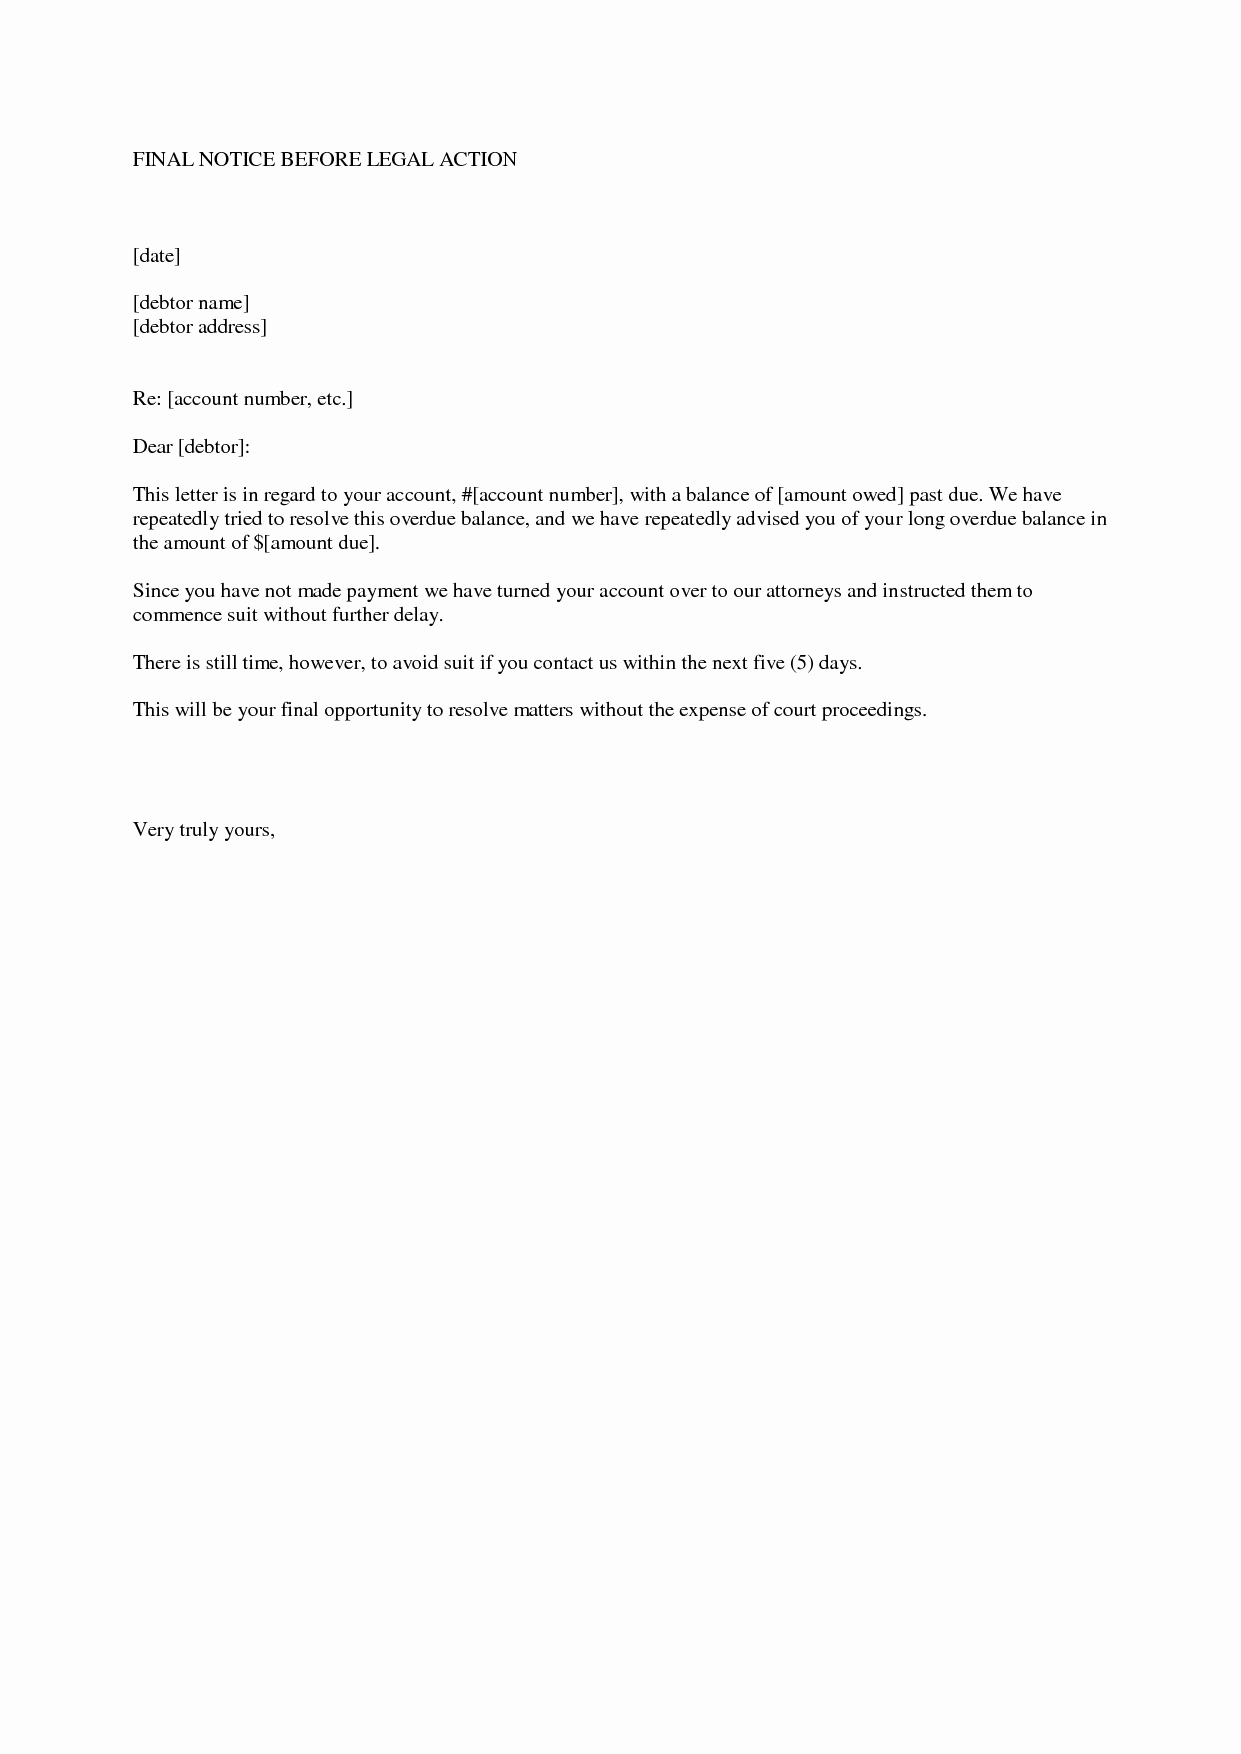 Collection Letter Final Notice Elegant Best S Of Collection Letter before Legal Action